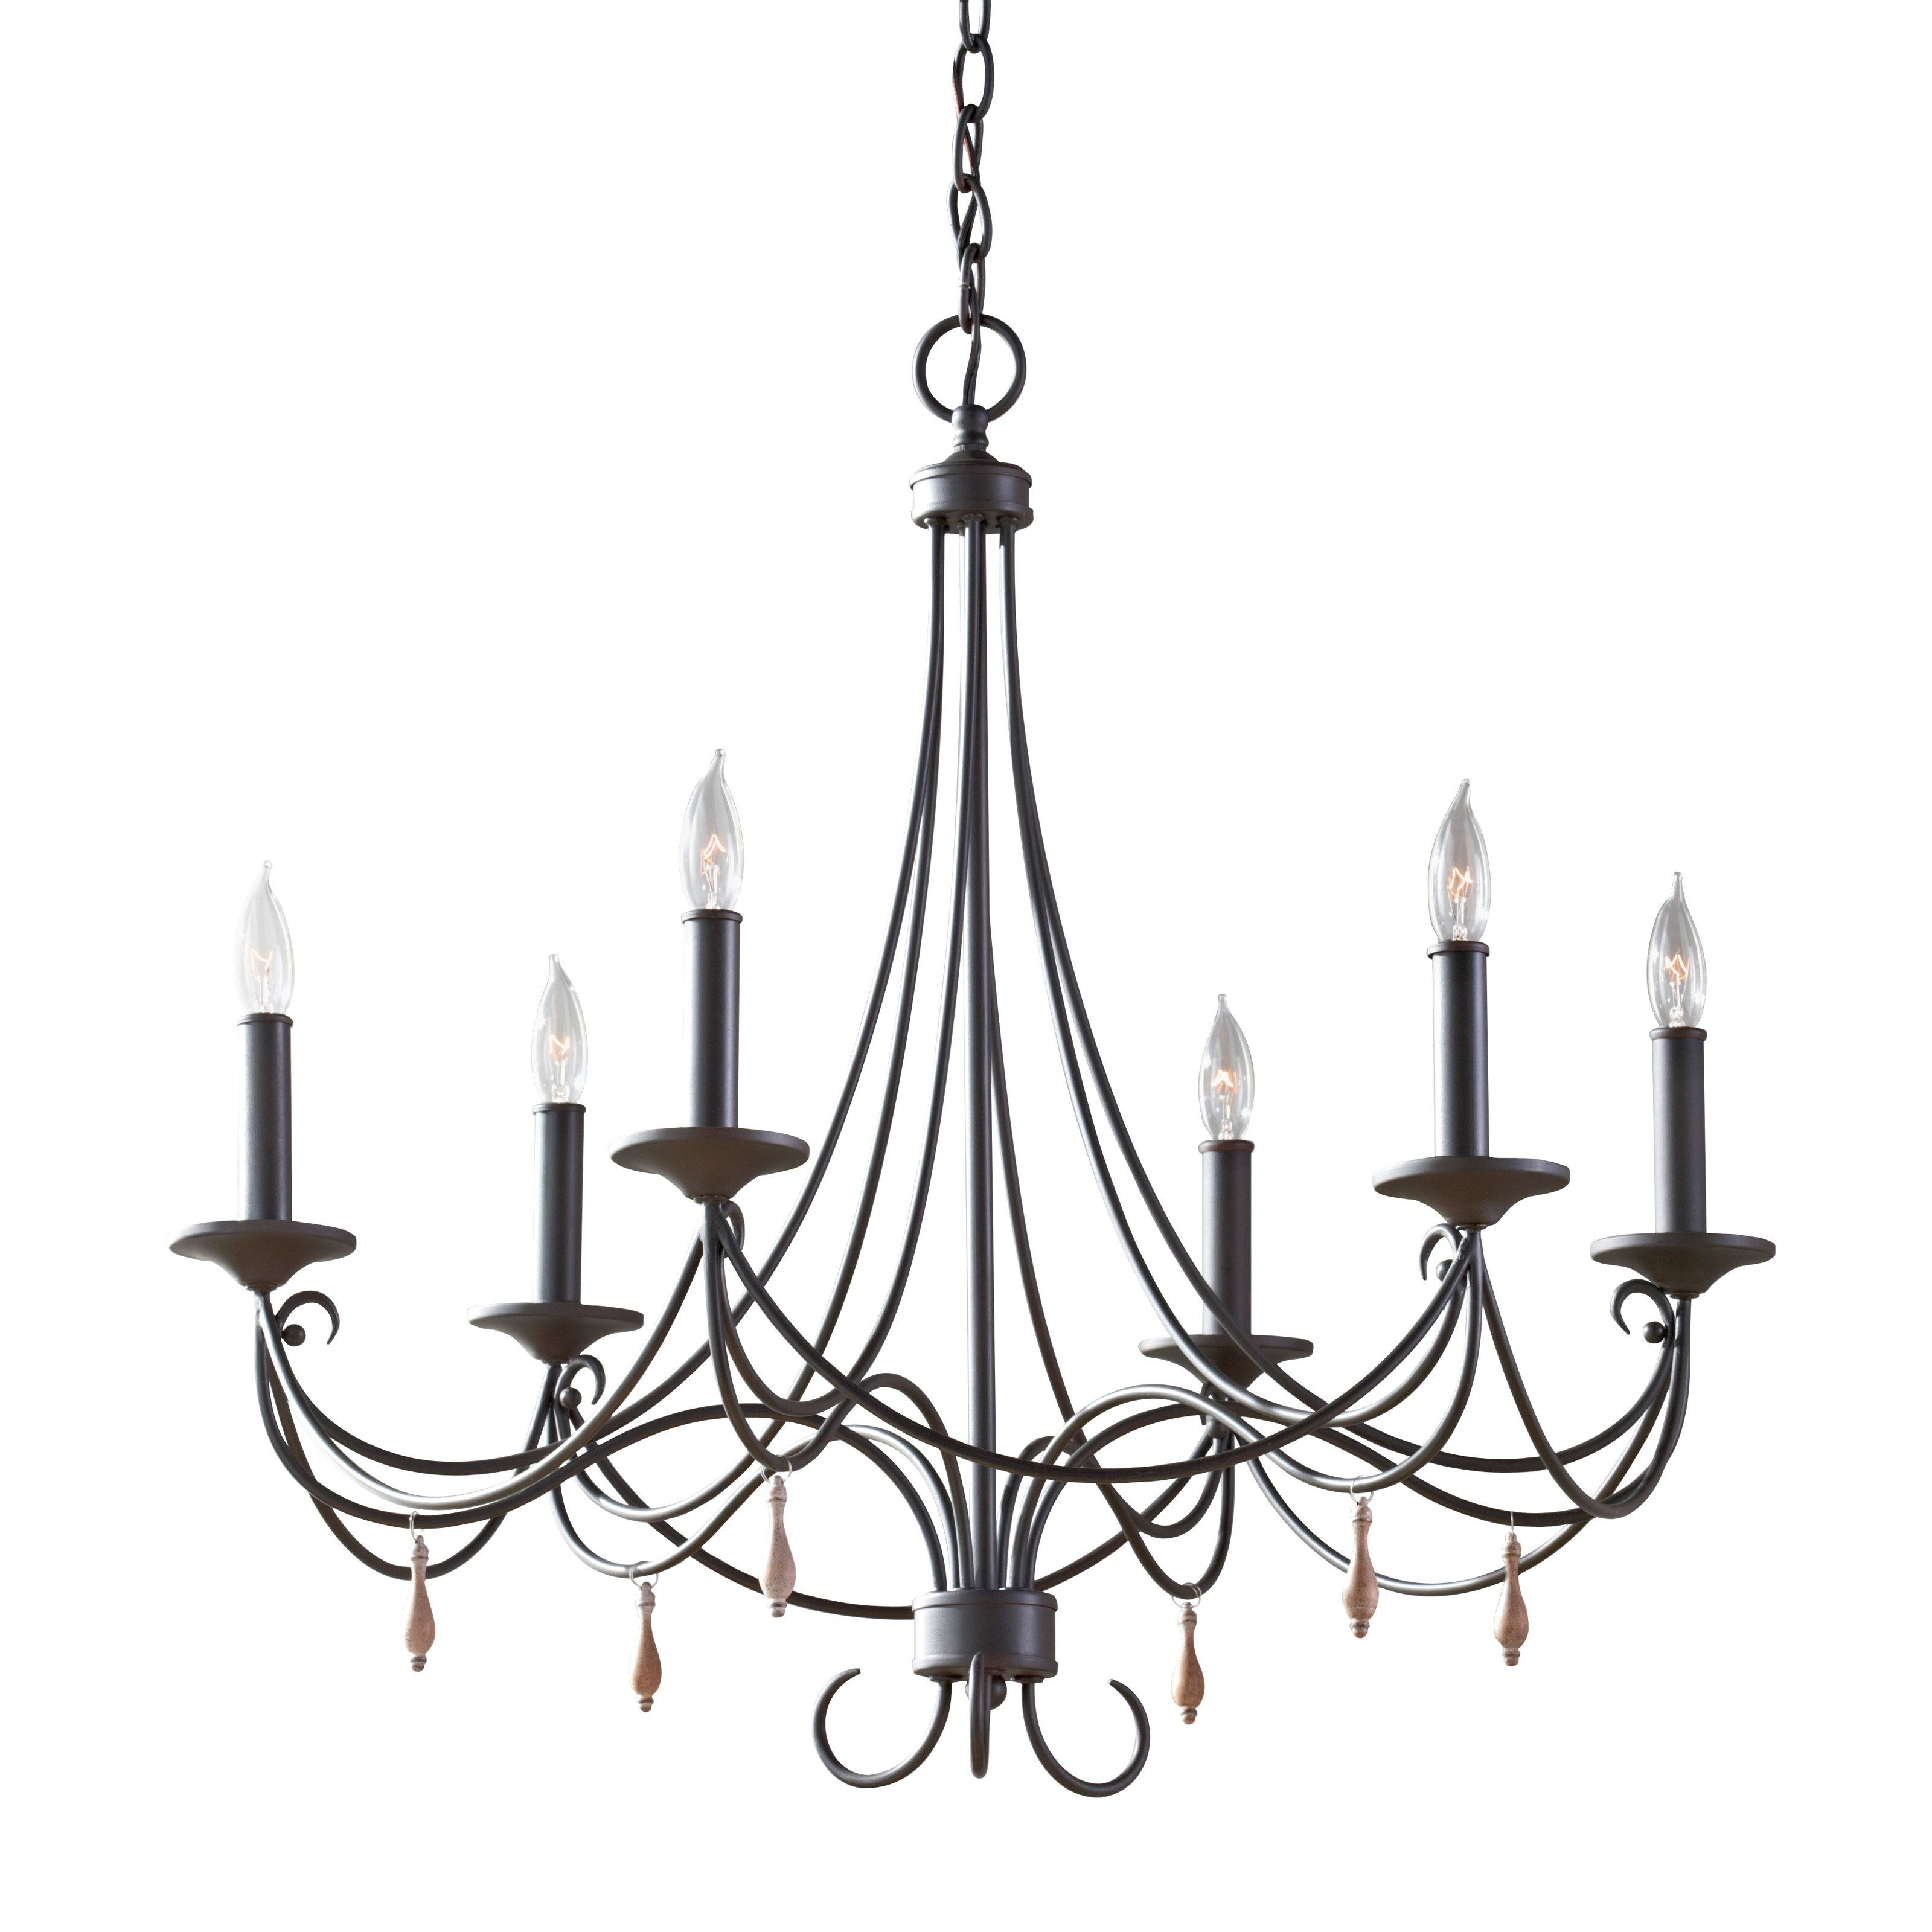 Have to have it Feiss Aliya Chandelier 27 75W in Rustic Iron